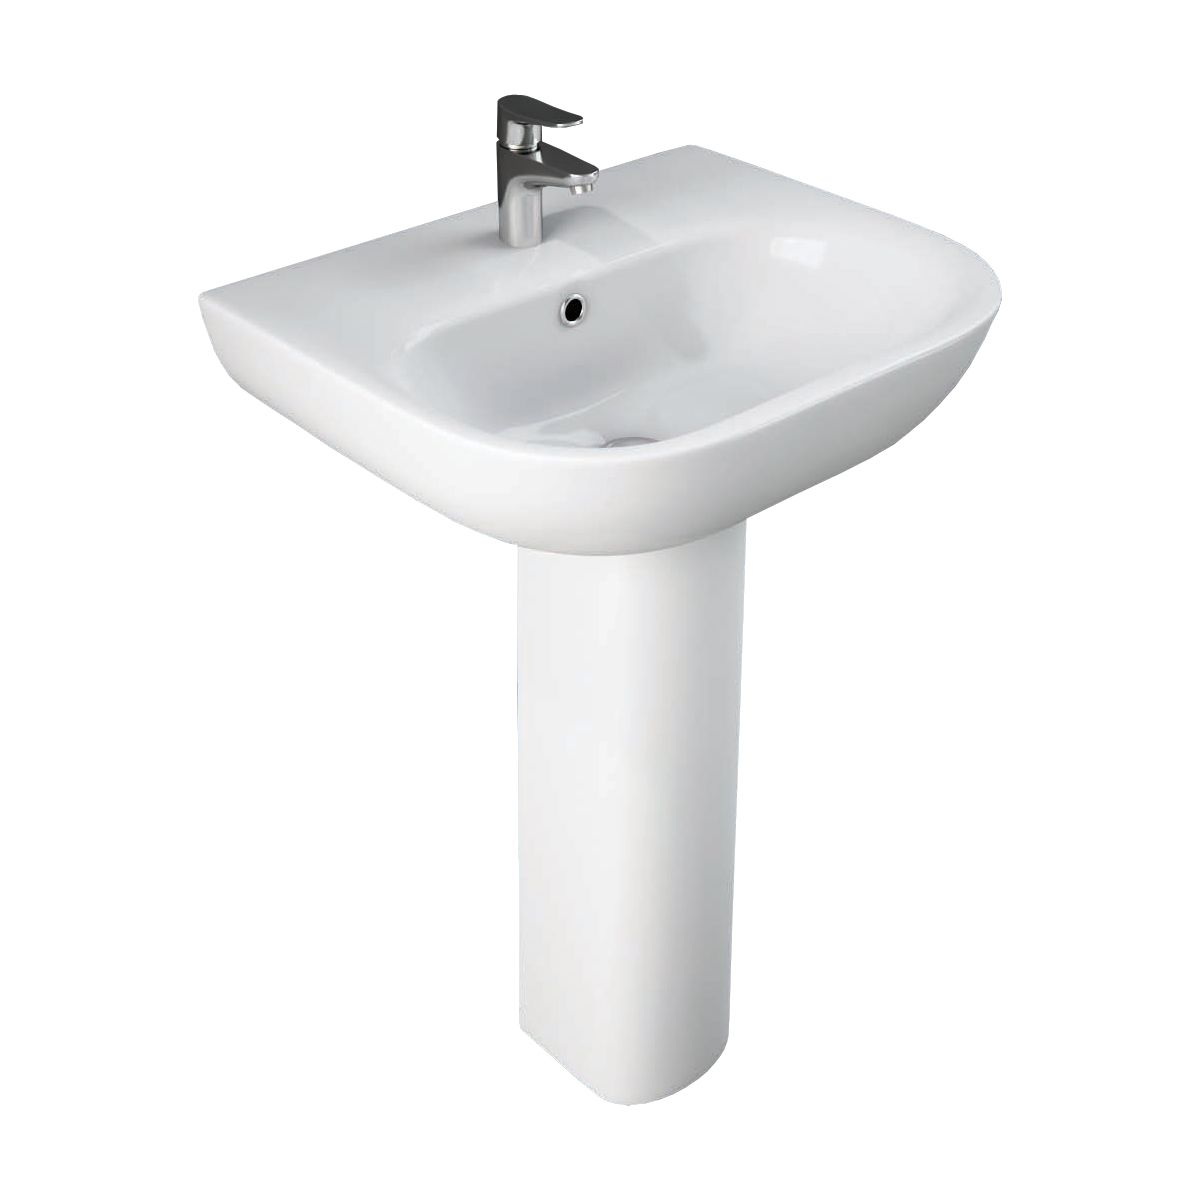 RAK Tonique 1 Tap Hole Luxury Basin with Full Pedestal